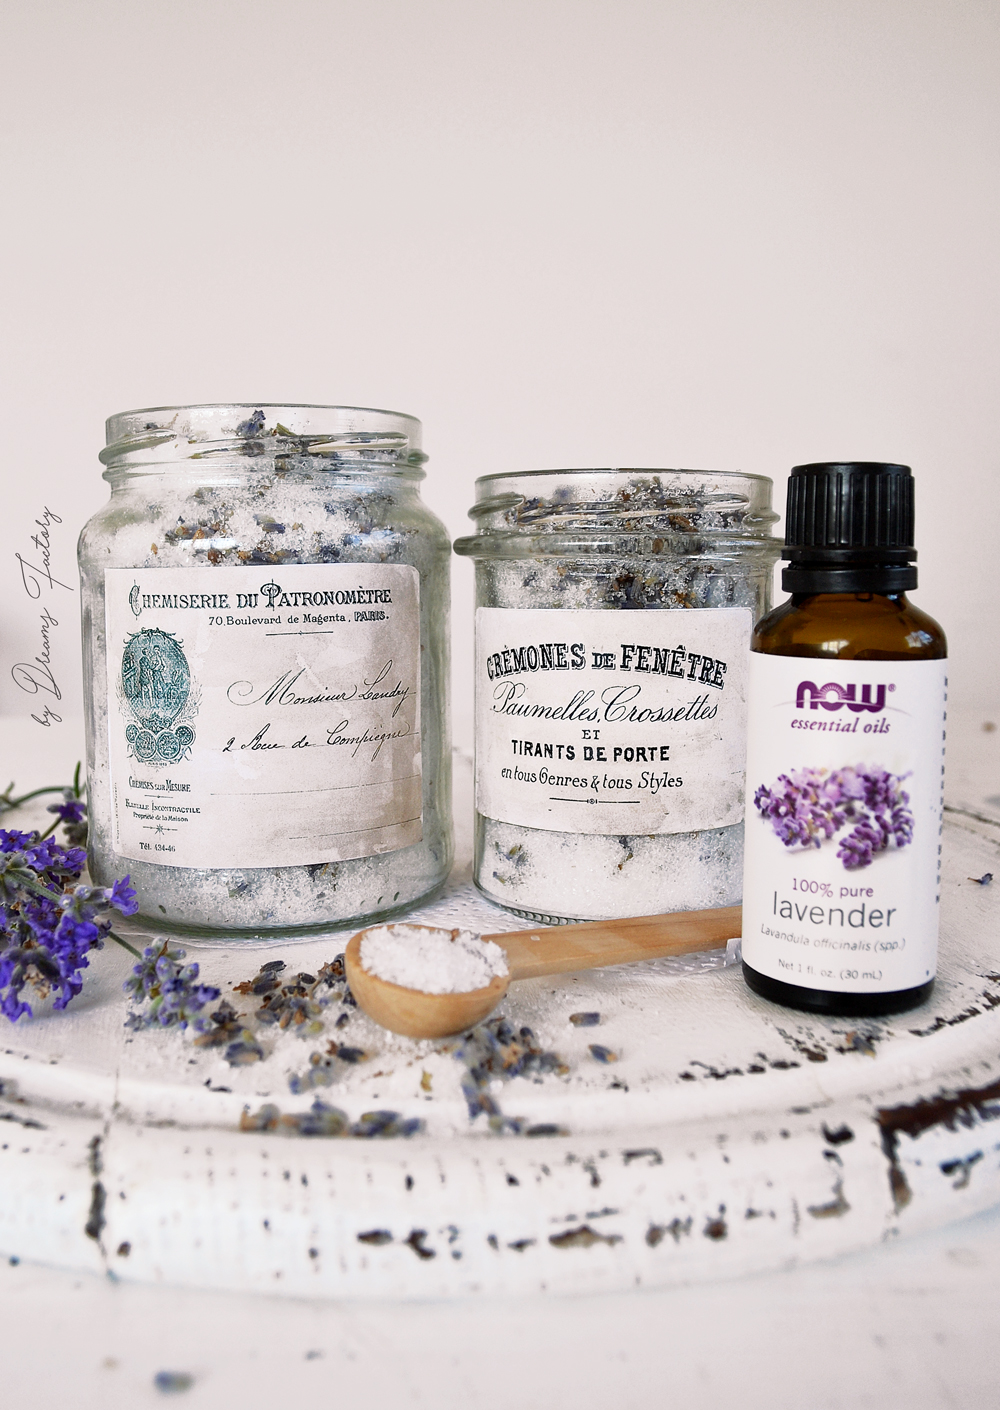 Epsom salt & lavender detox bath soak with therapeutic and relaxing properties - by Dreams factory